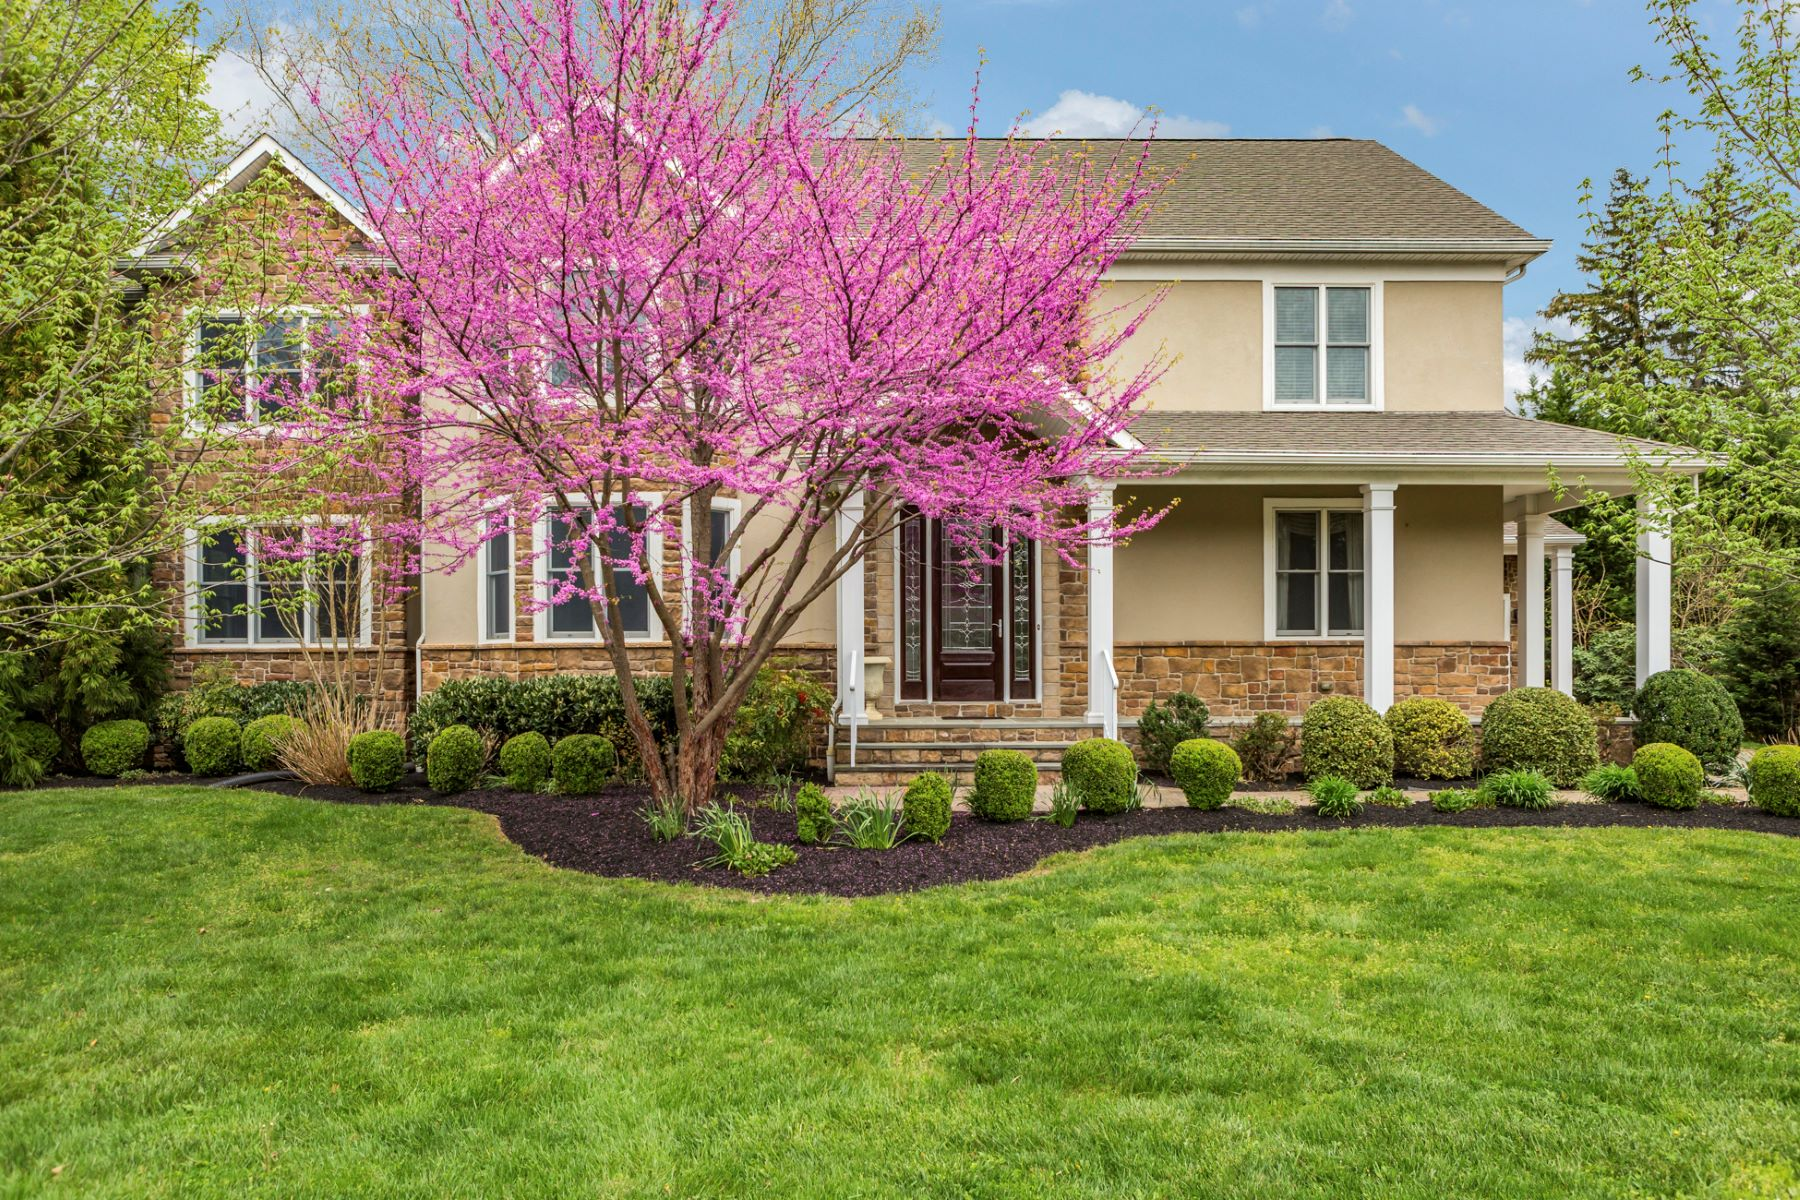 Single Family Home for Sale at Elegance and Comfort in Custom Lawrenceville Home - Lawrence Township 2 Shelmet Lane Lawrenceville, 08648 United States